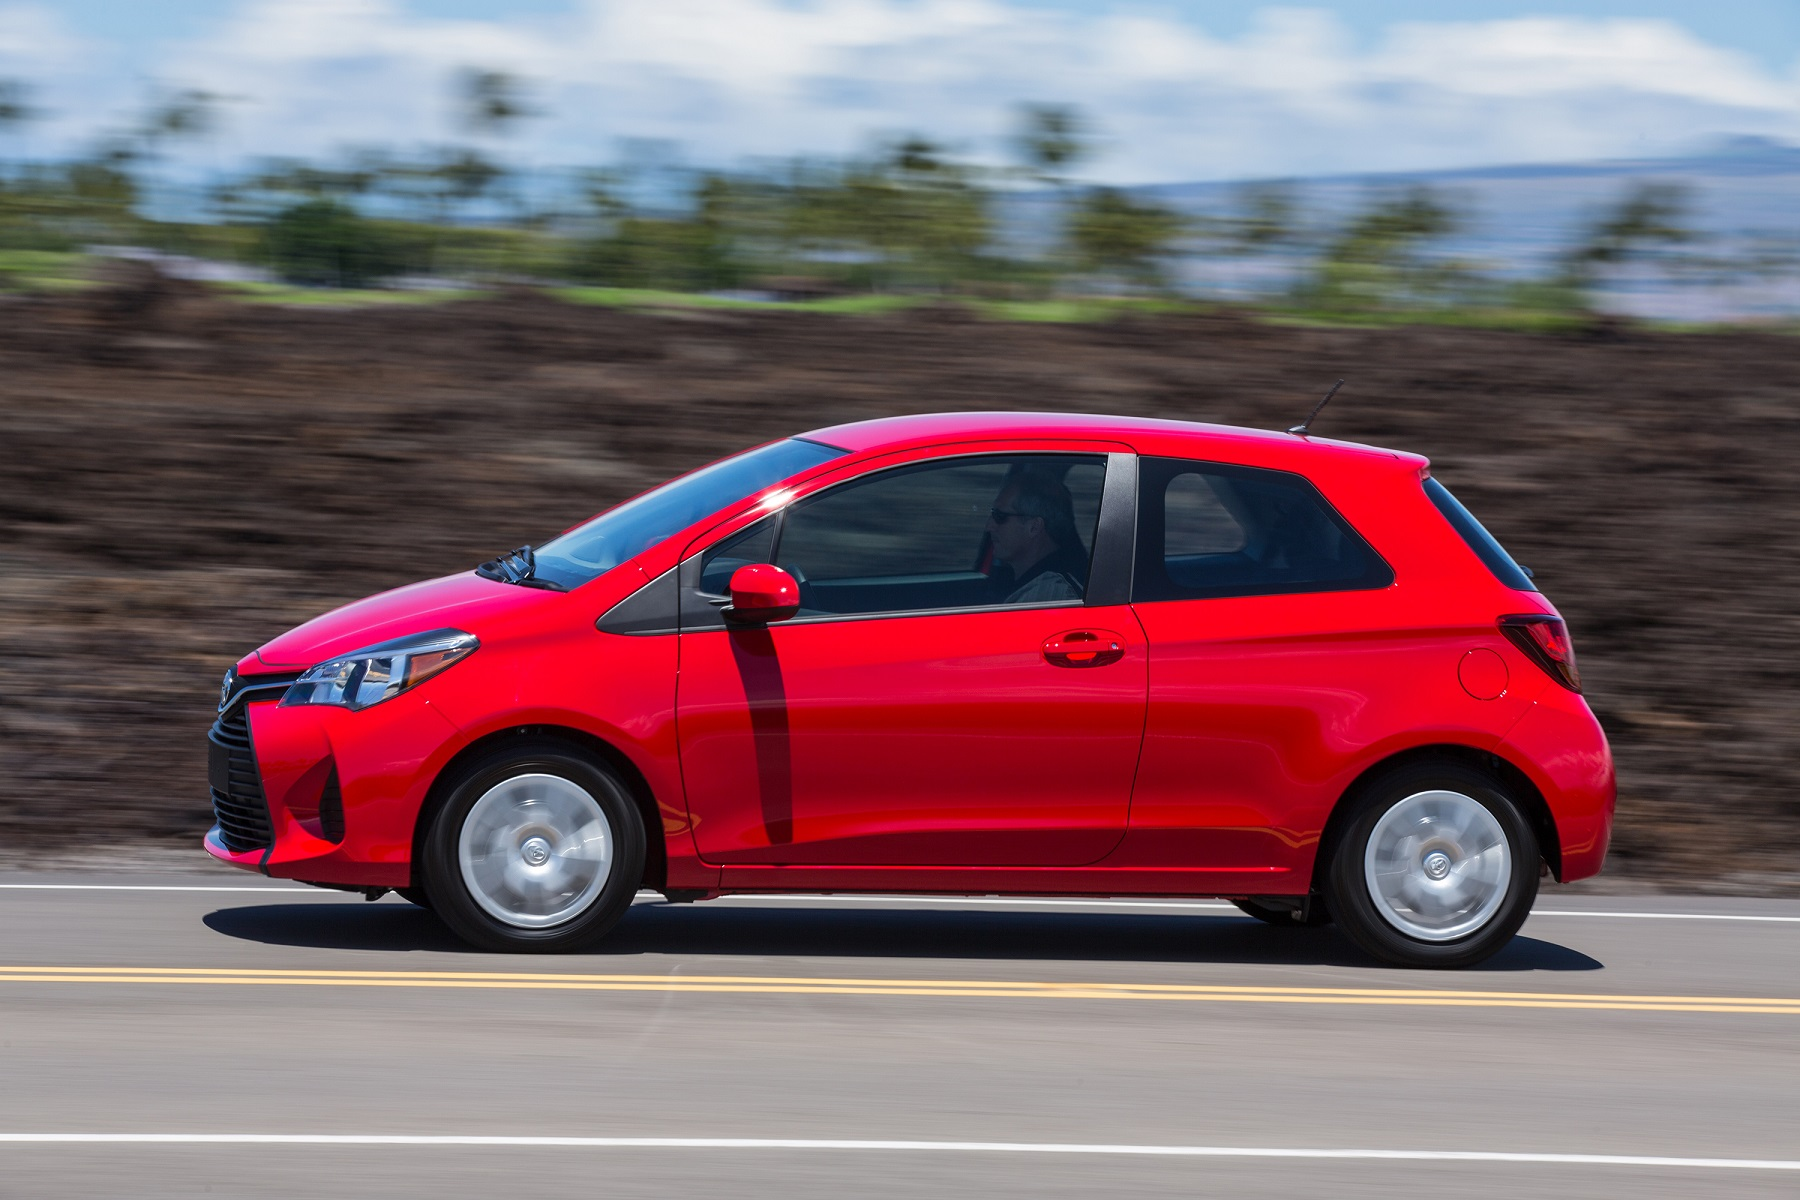 Toyota Yaris restyled to evoke the dynamics of a hot hatchback